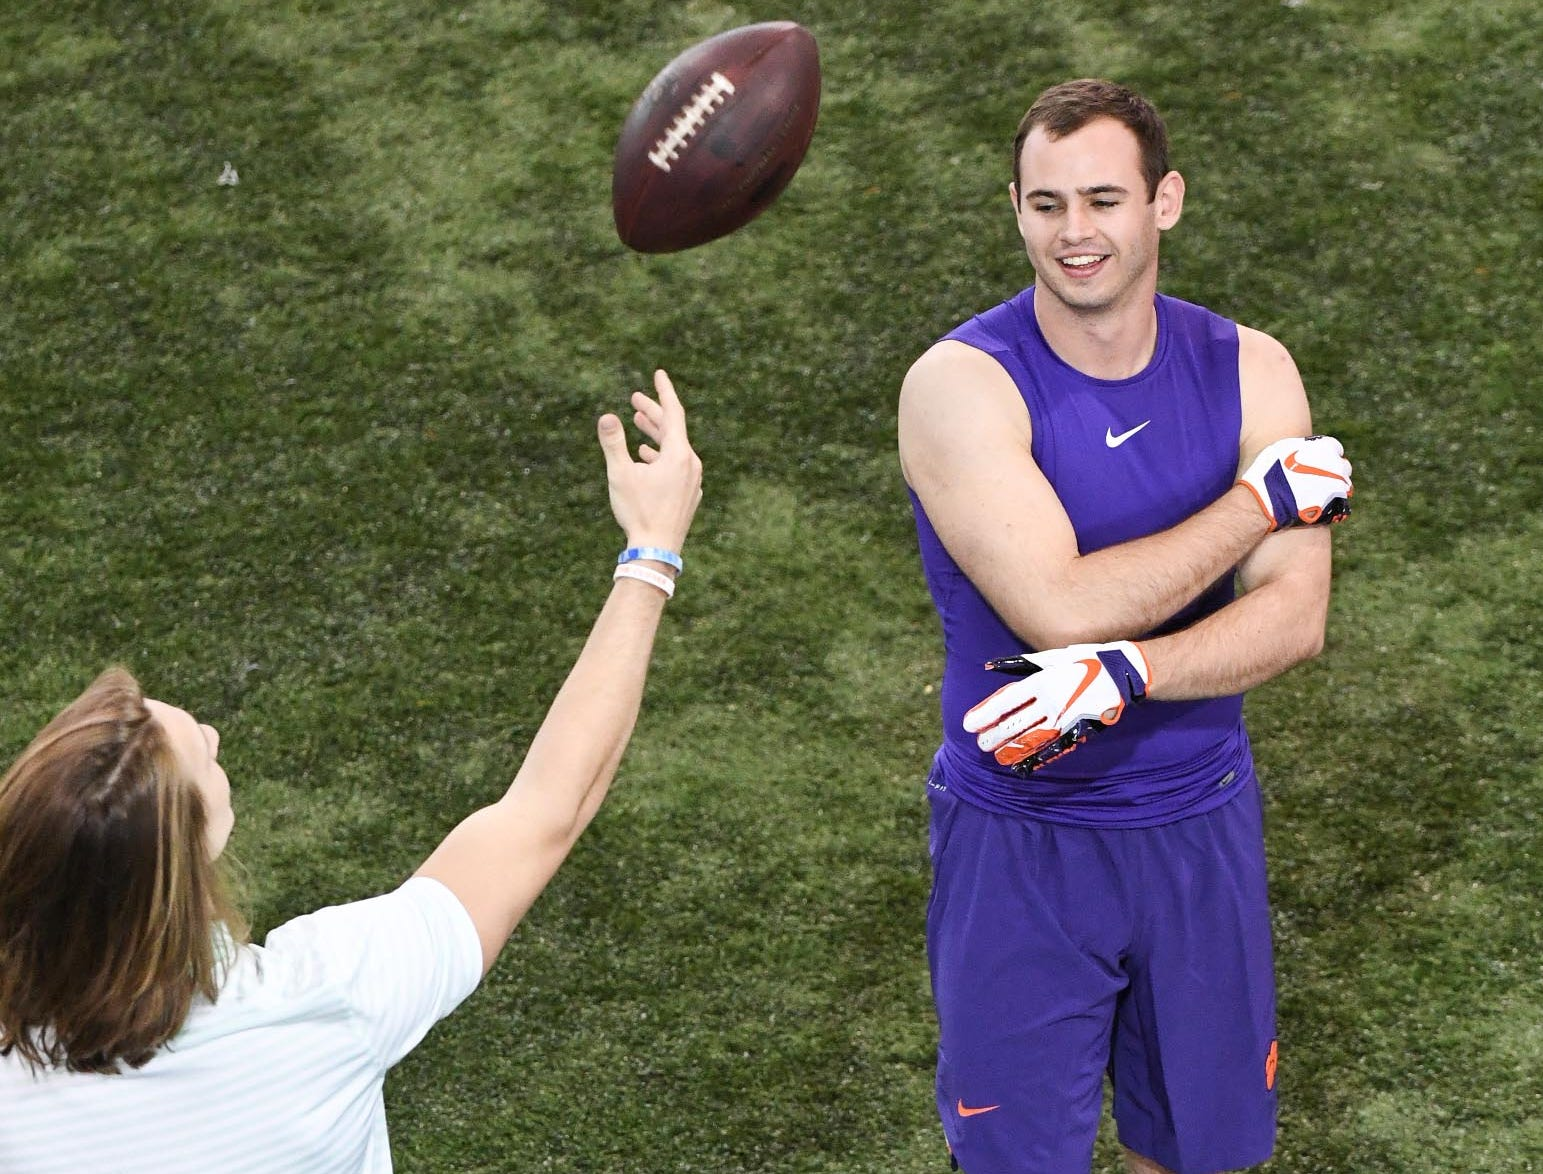 Wide receiver Hunter Renfrow watches former teammate and Clemson quarterback Trevor Lawrence toss a ball in the air during Clemson pro day at the Poe Indoor Facility in Clemson Thursday, March 14, 2019.